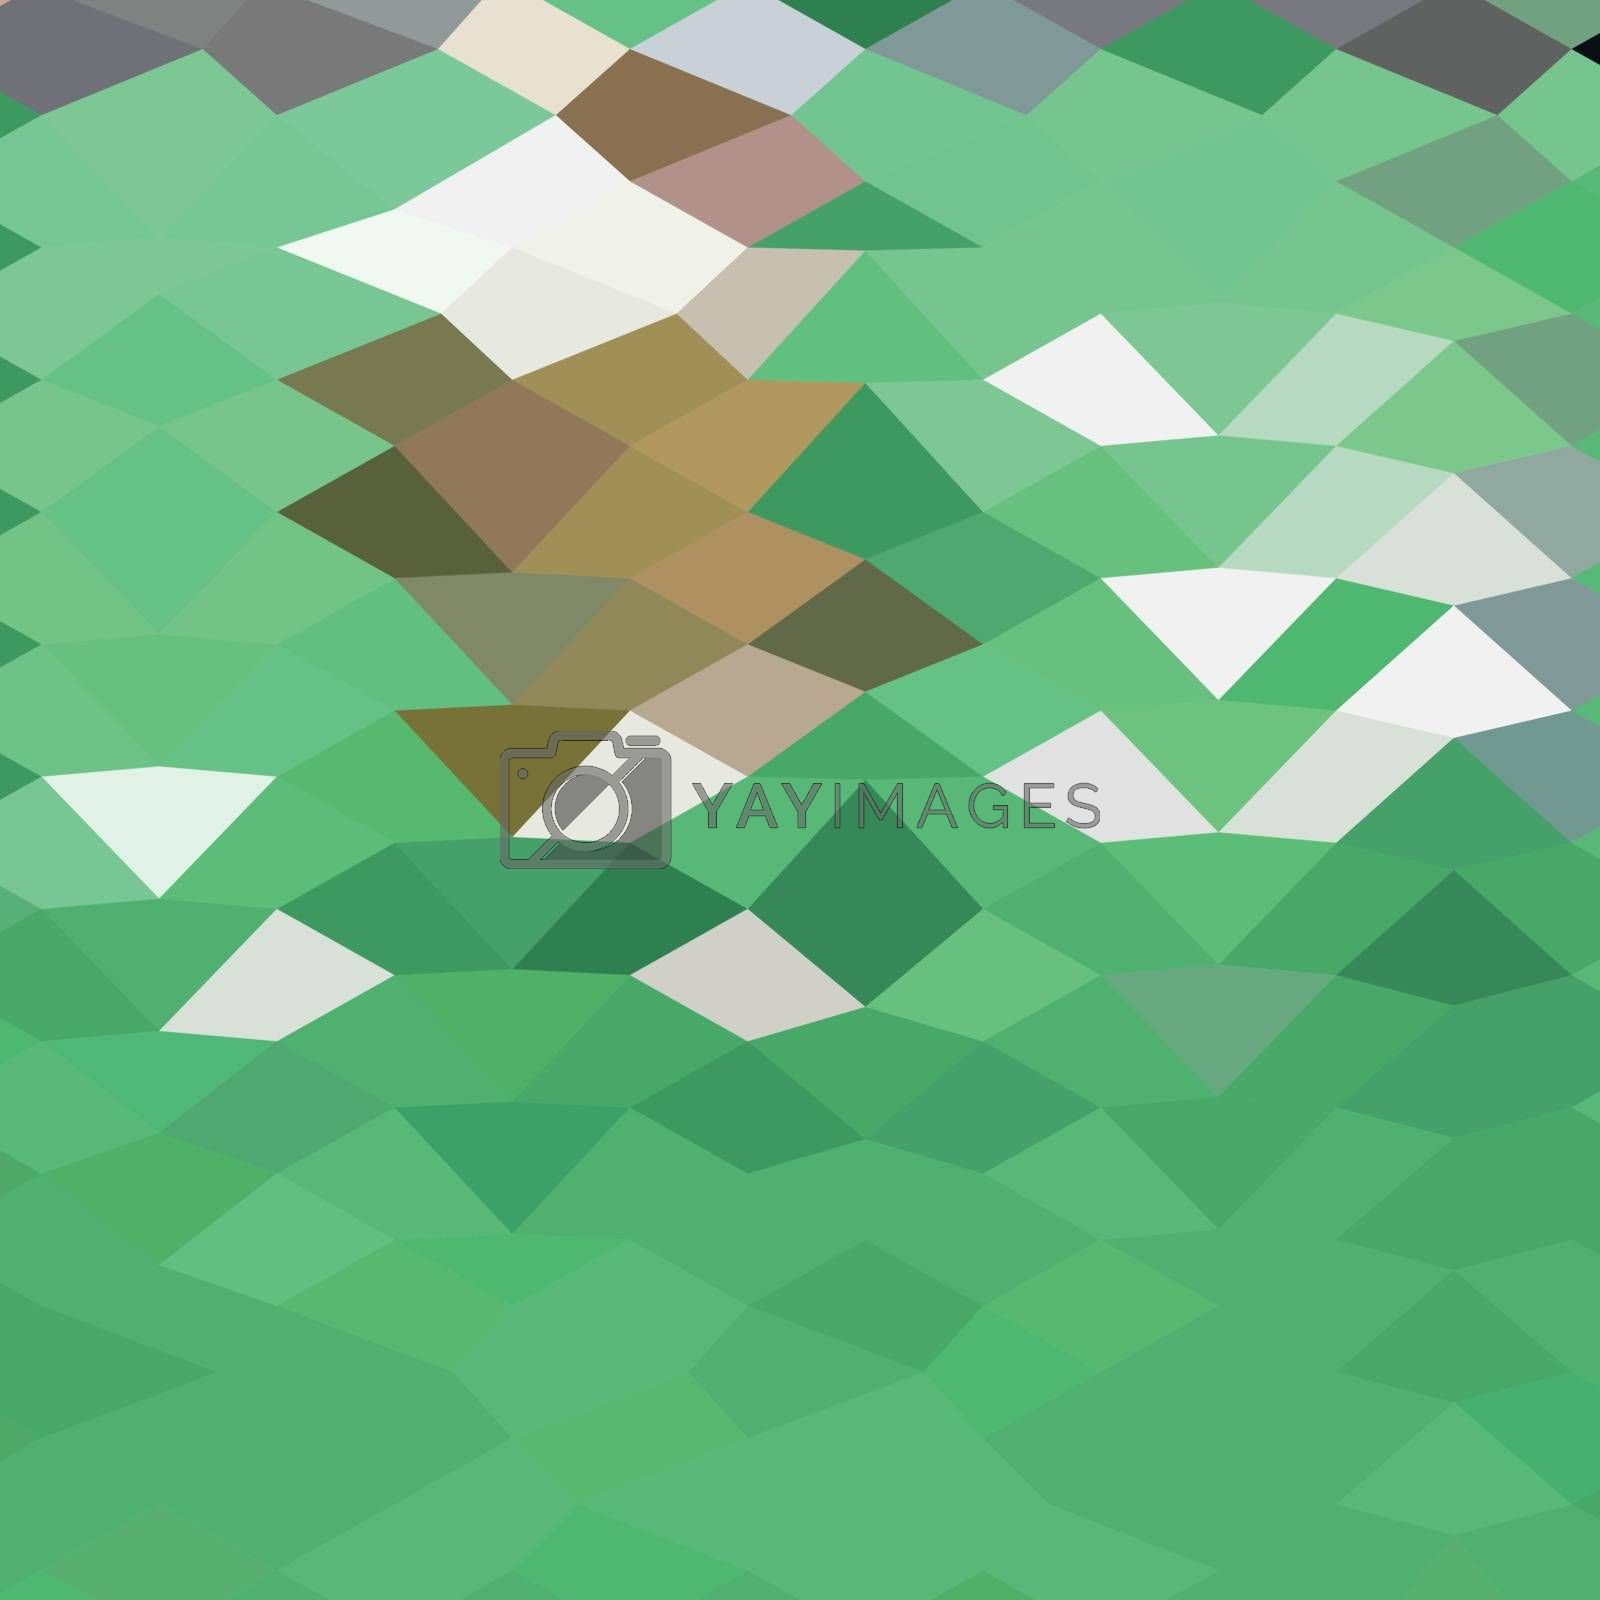 Low polygon style illustration of emerald green abstract background.